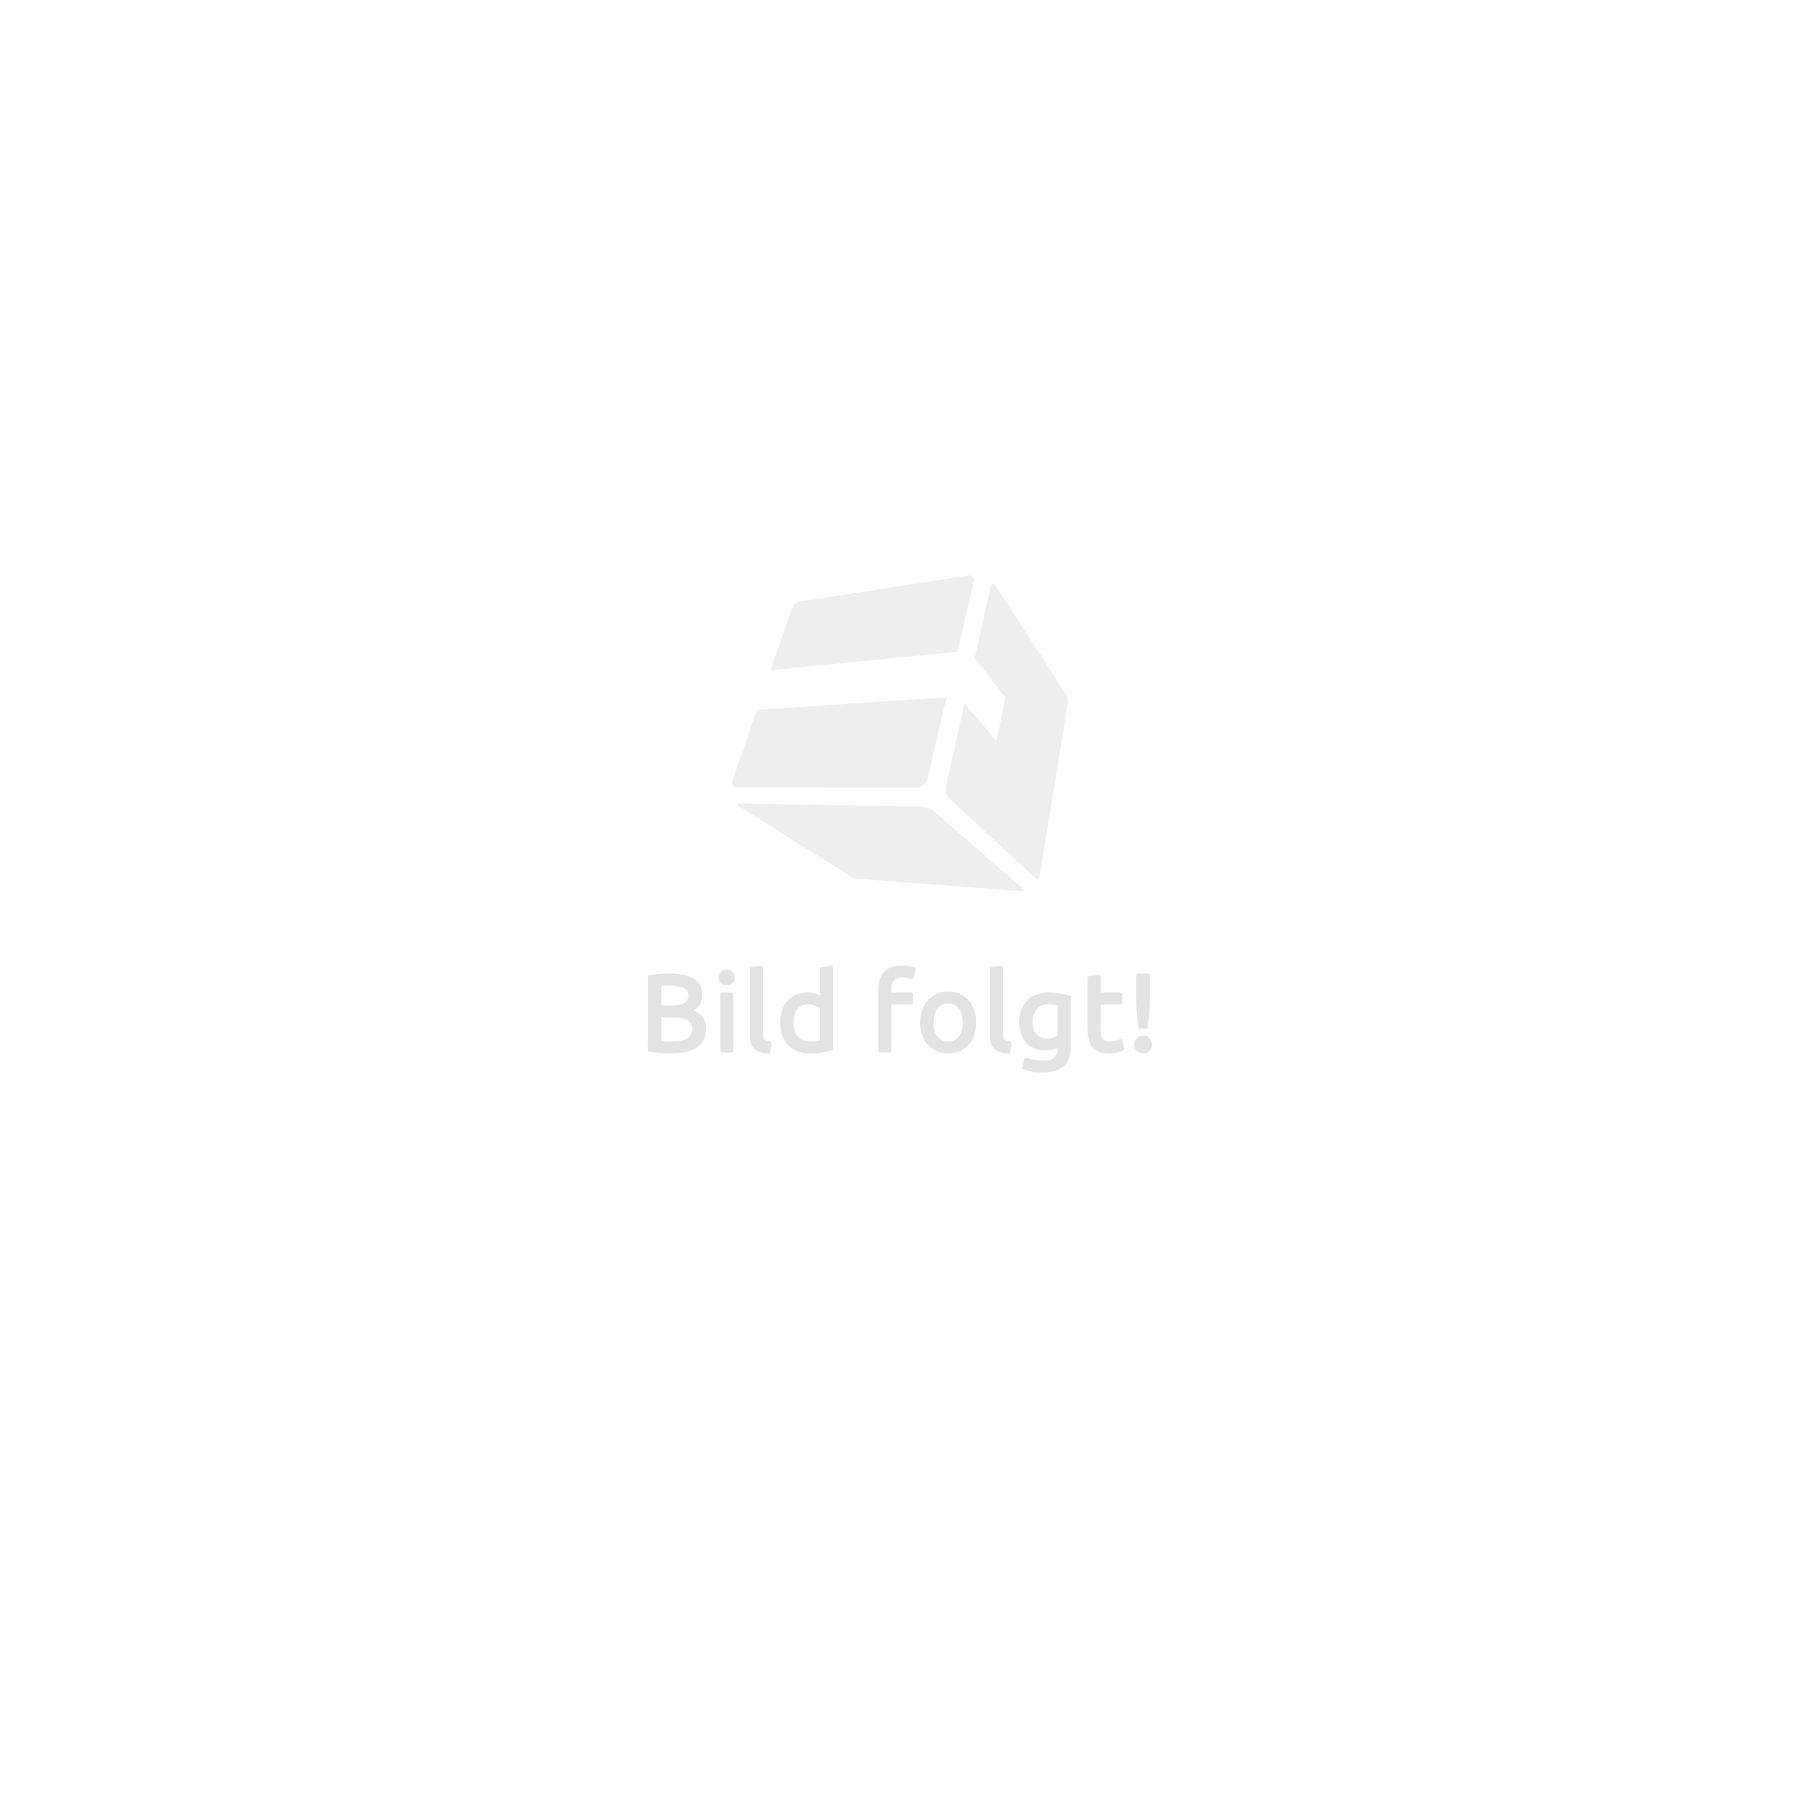 Table de lit pliable pour pc portable notebook tablet - Table de ventilation pour pc portable ...